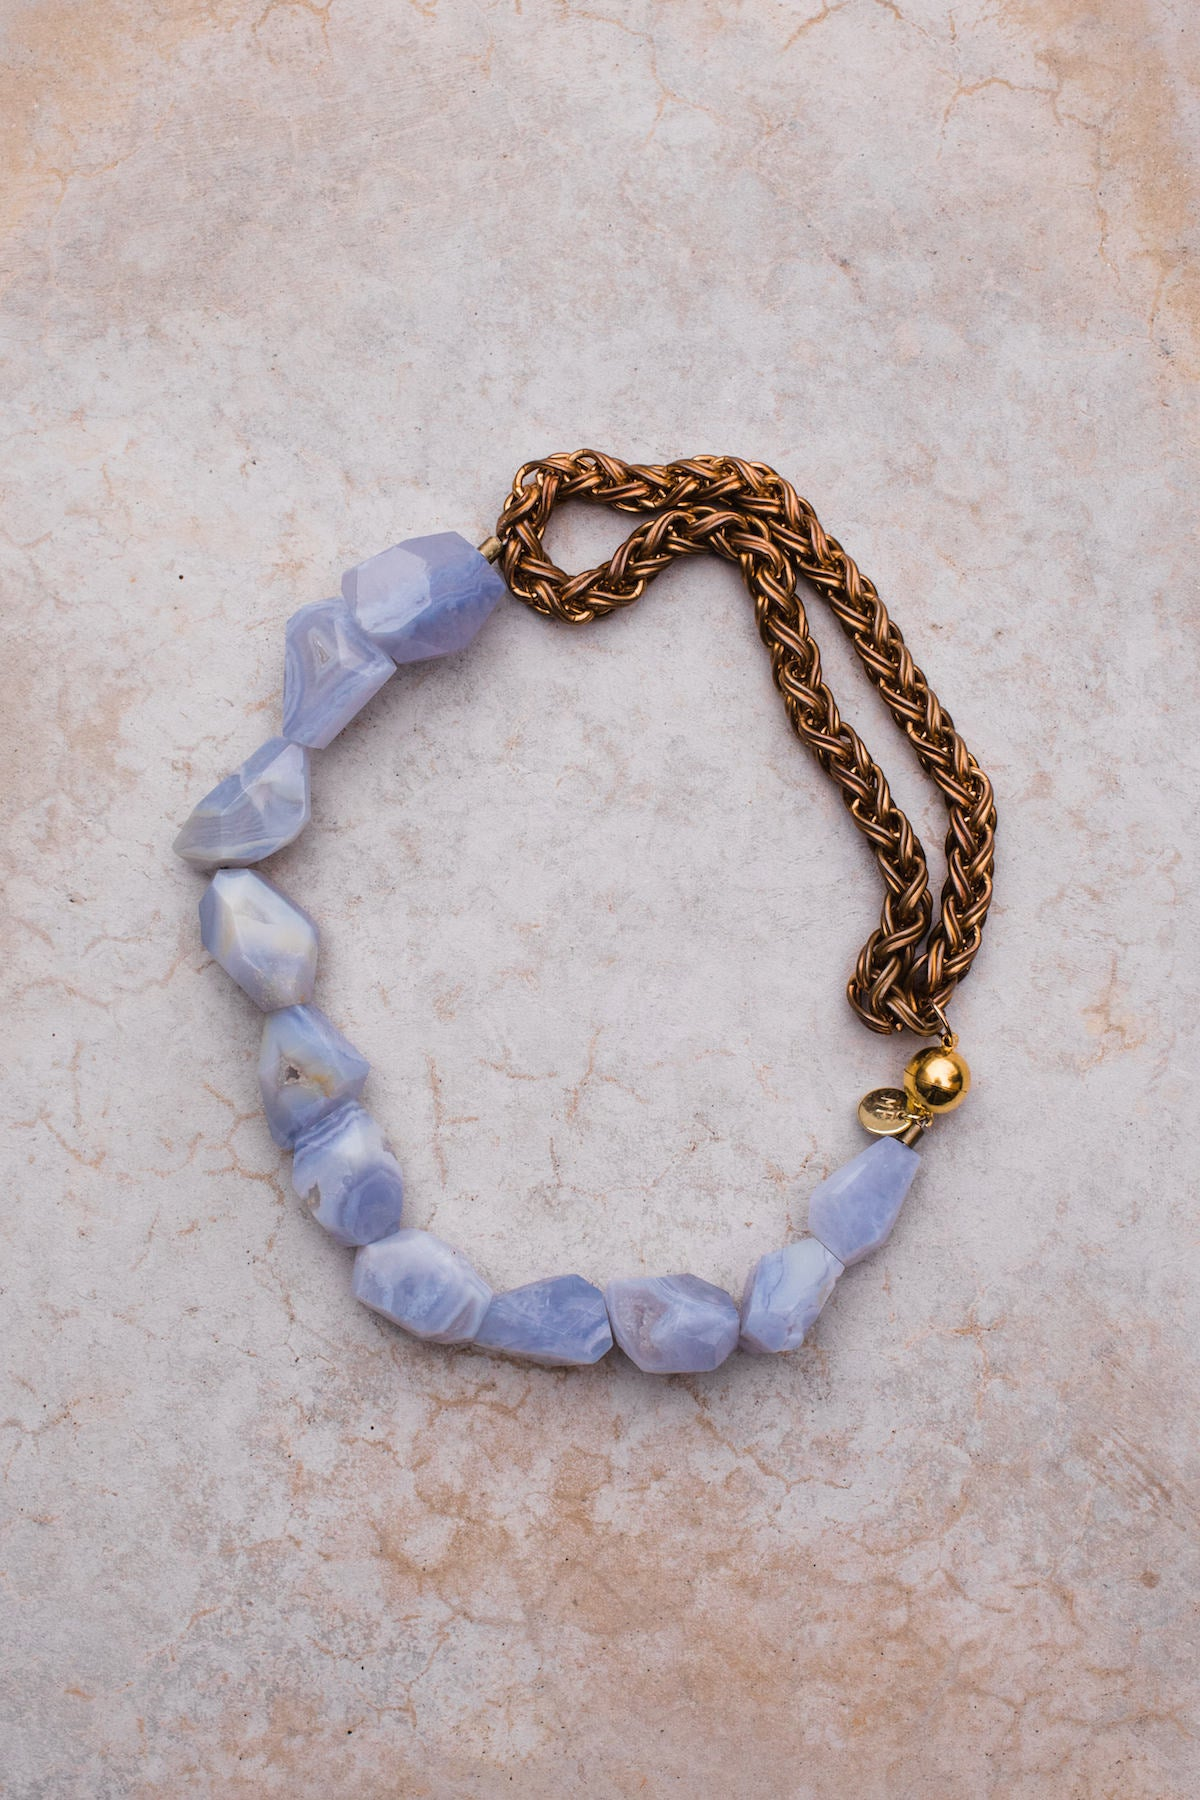 Blue Lace Agate Antique Gold Rope Chain Necklace